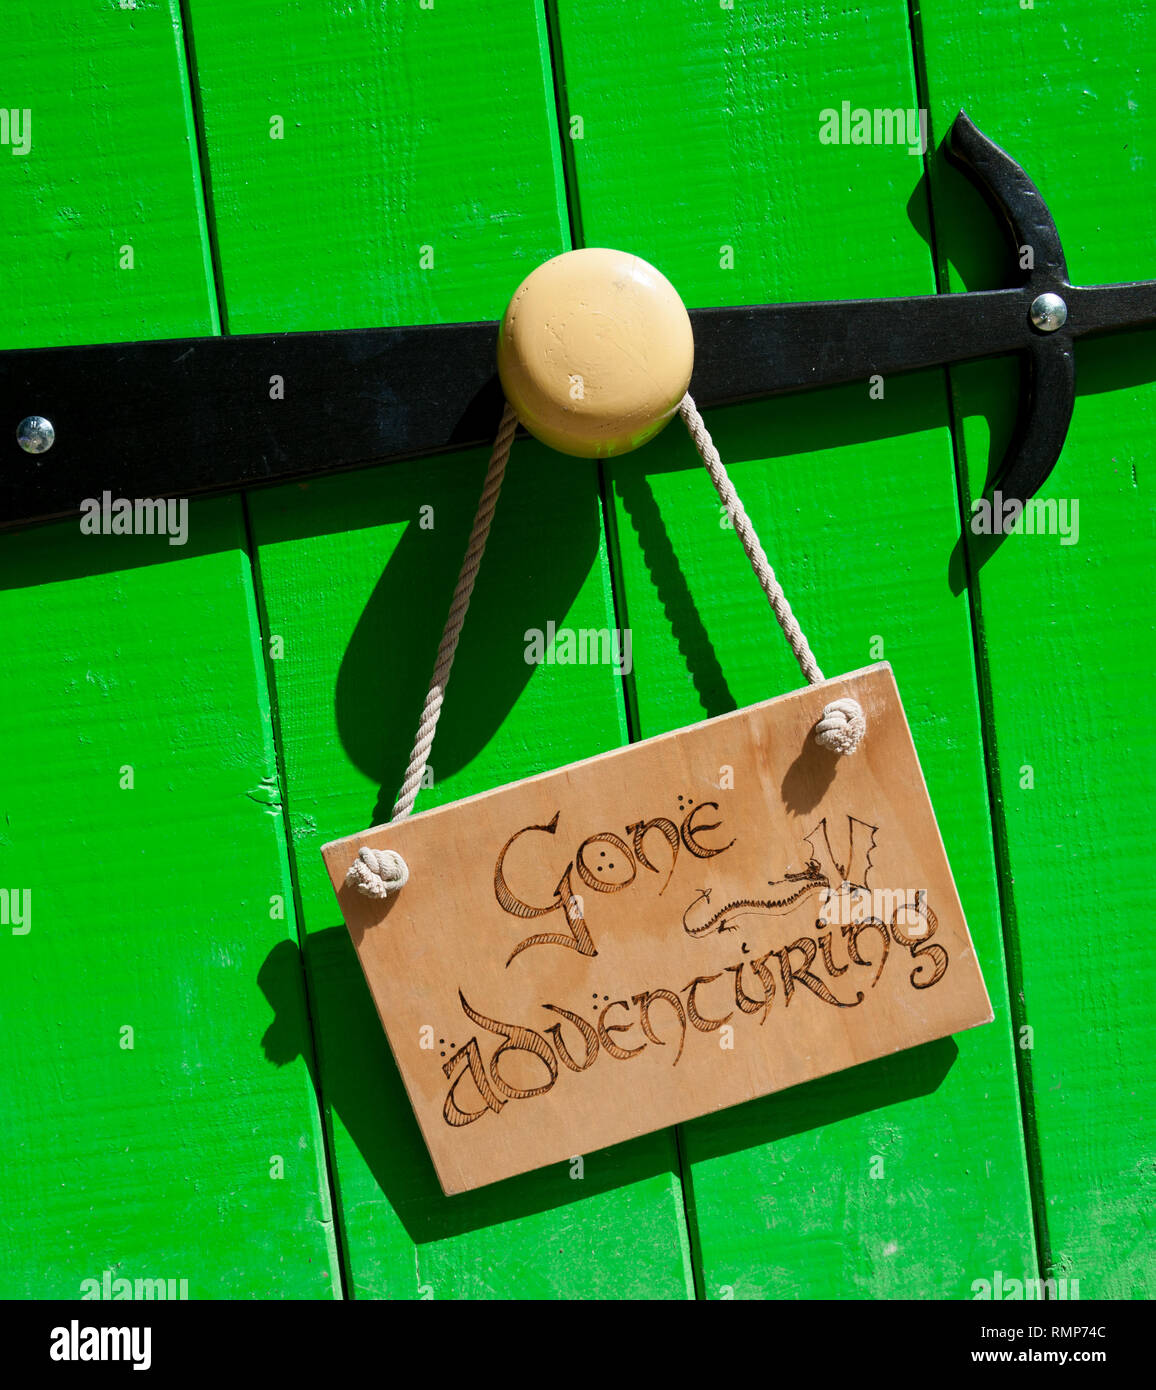 Green wooden door with large round knob and black hinge.  Gone Adventuring sign hung from door knob - Stock Image